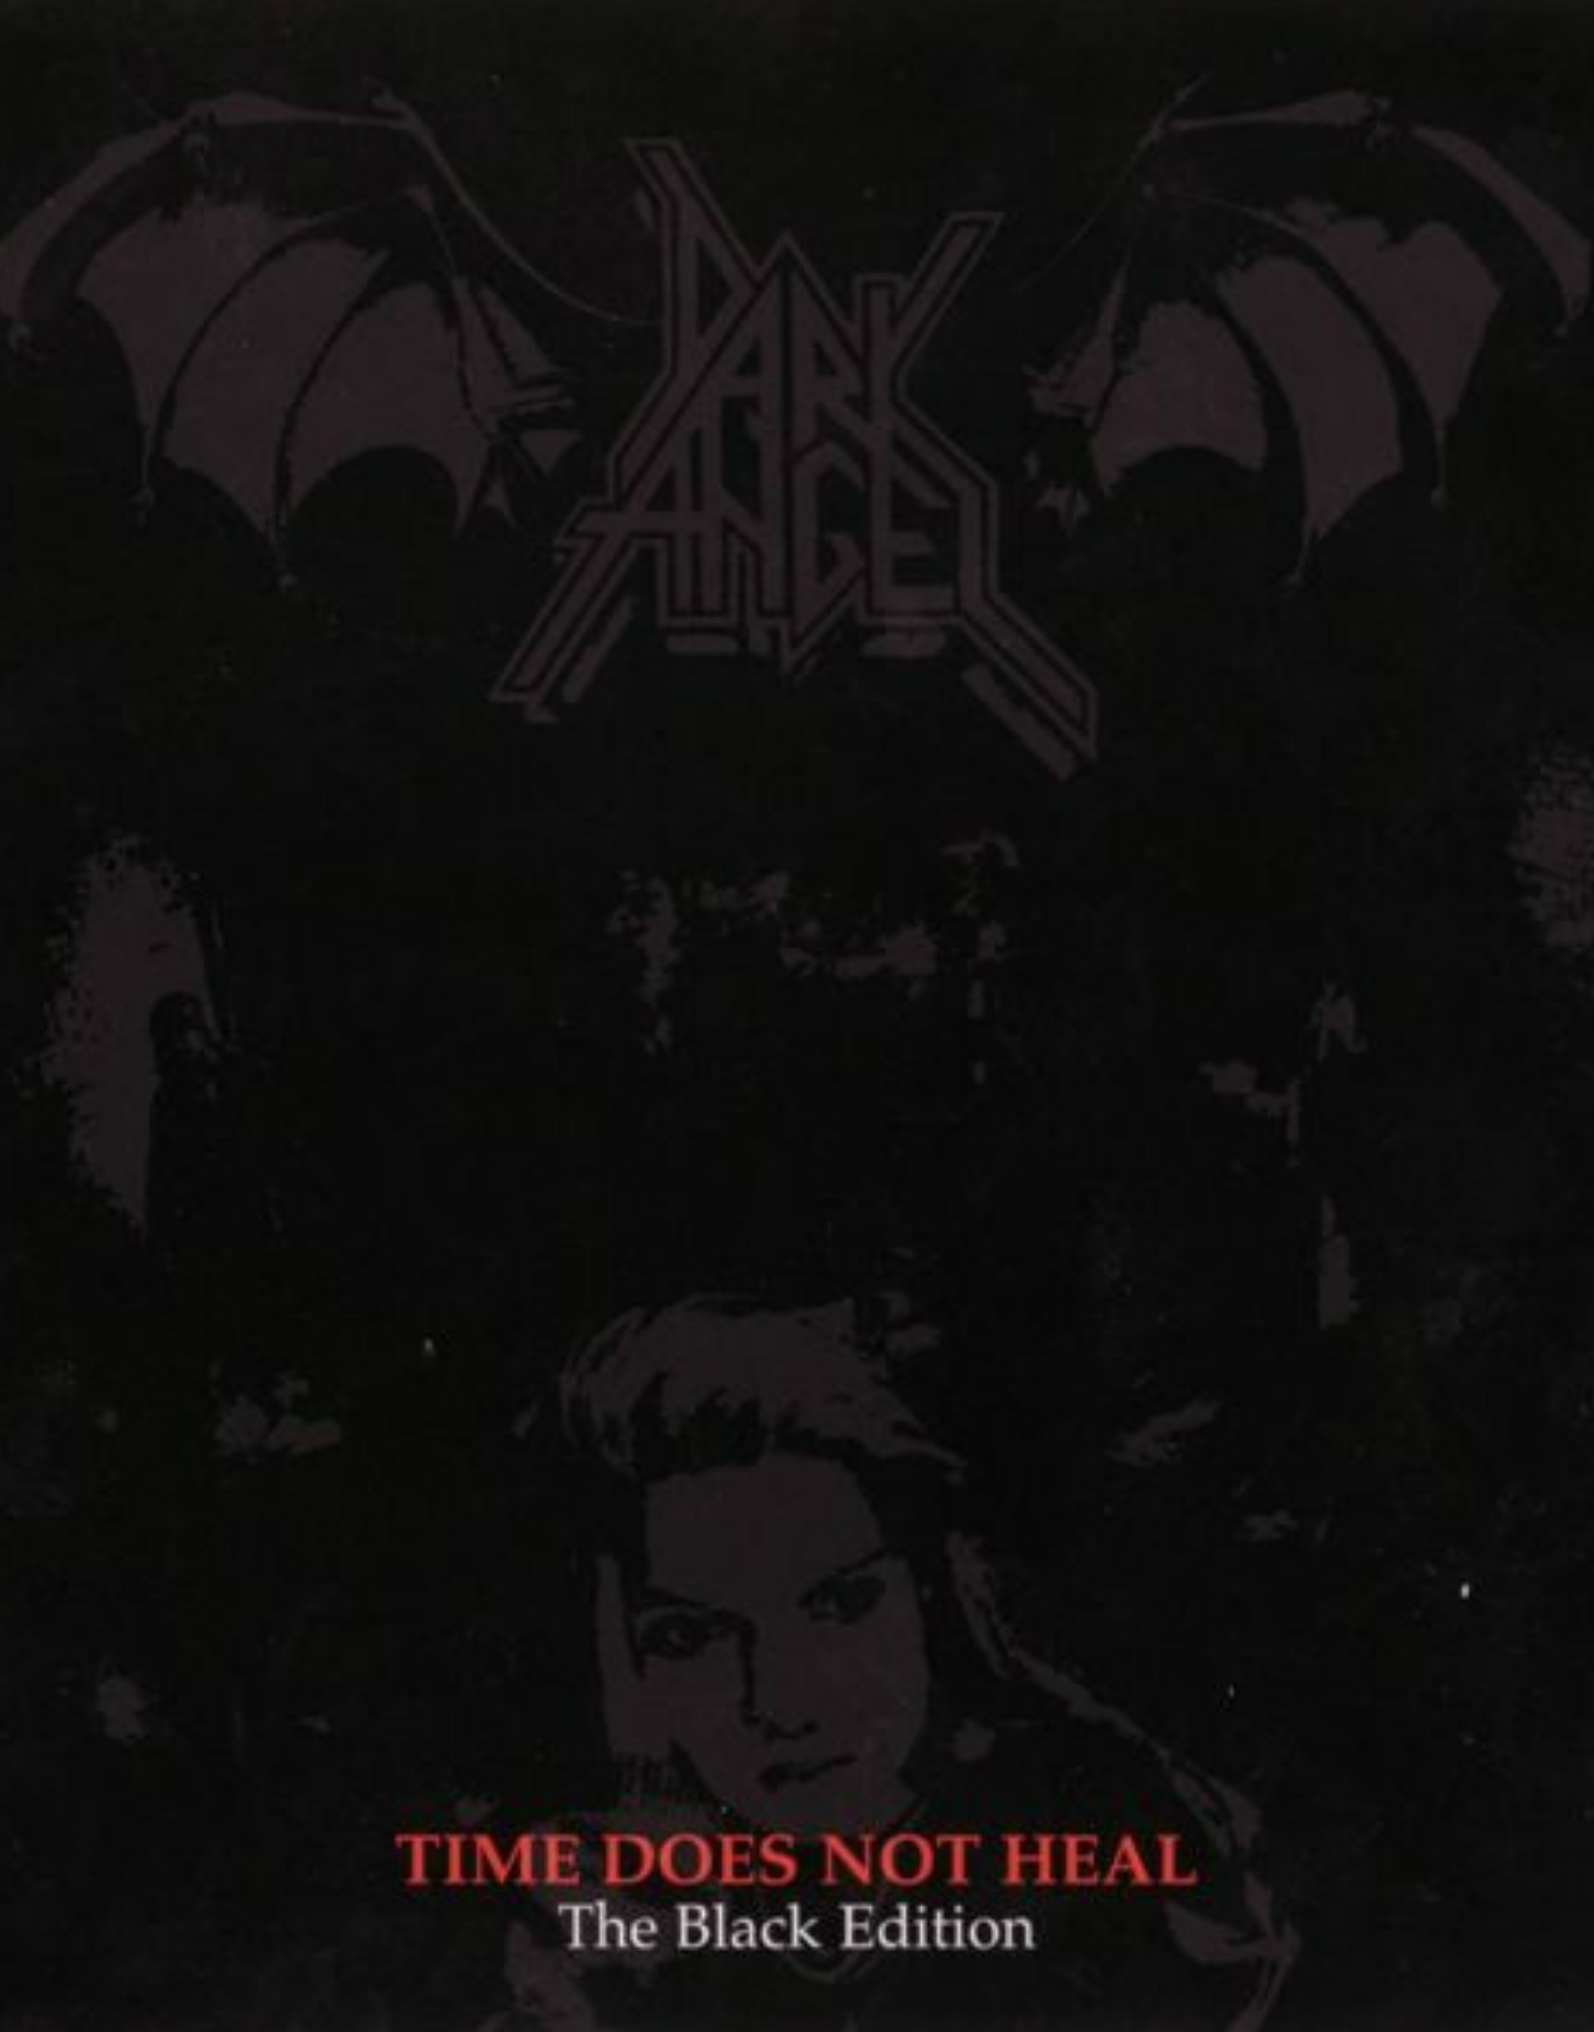 Dark Angel - Time Does Not Heal (A5 Digibook CD)